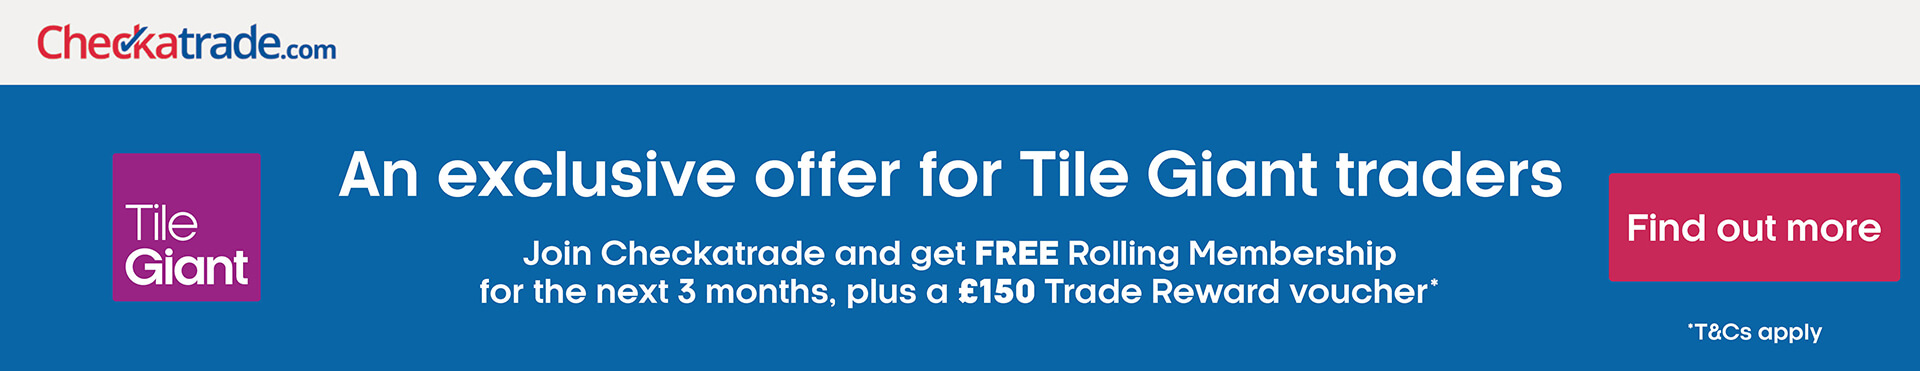 Tile Giant in partnership with Checkatrade